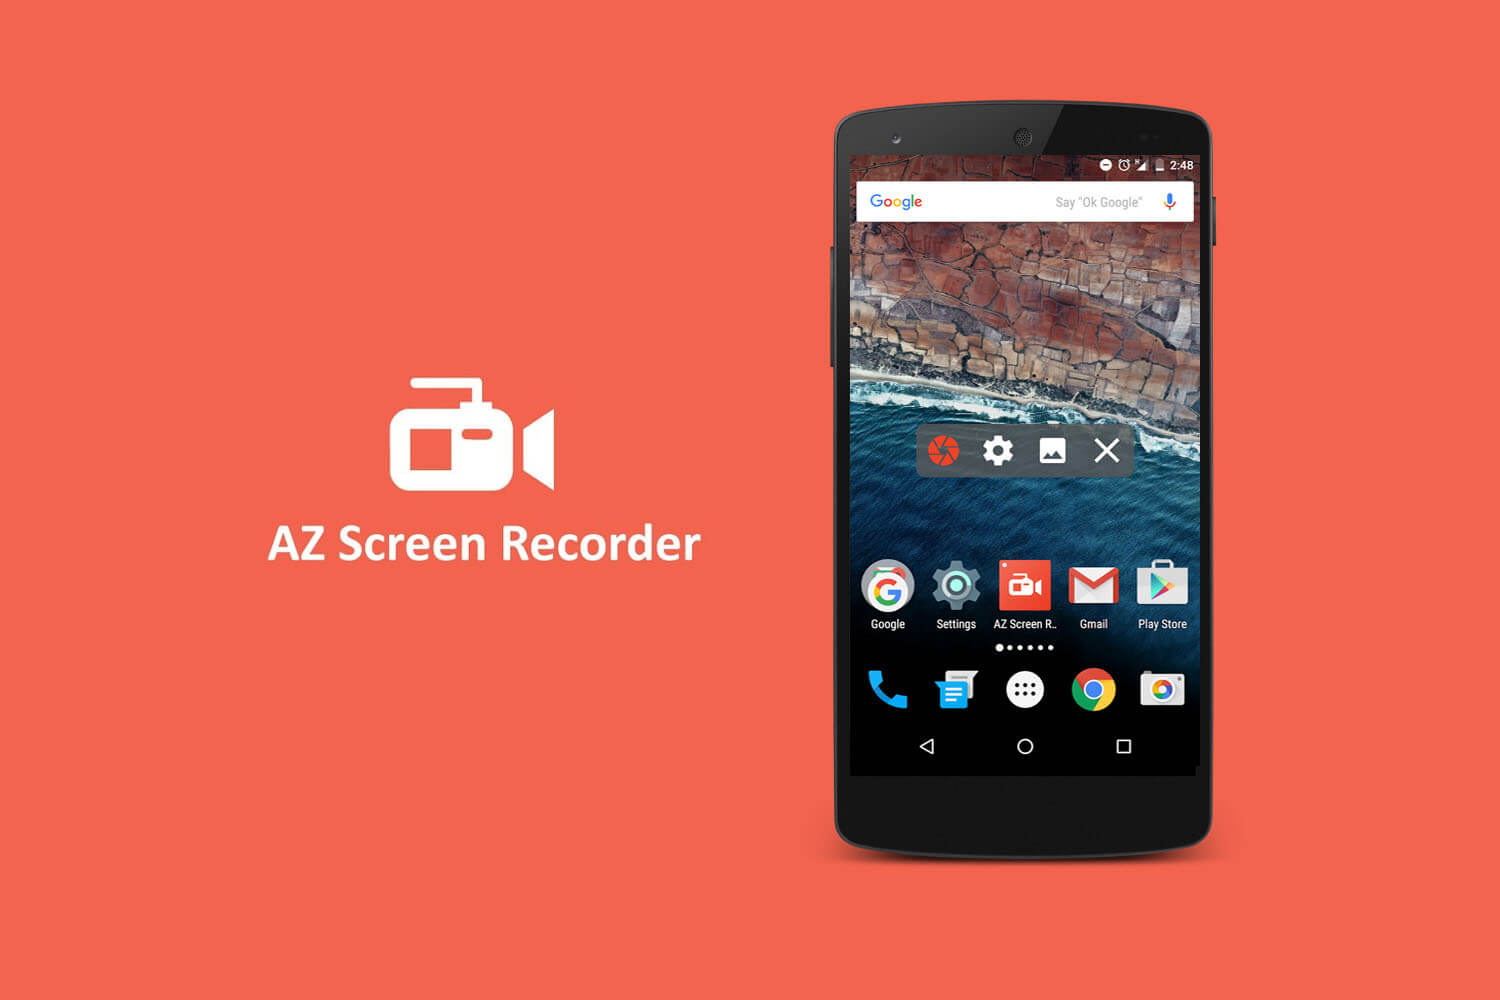 az-screen-recorder-no-root-app-android-free-download